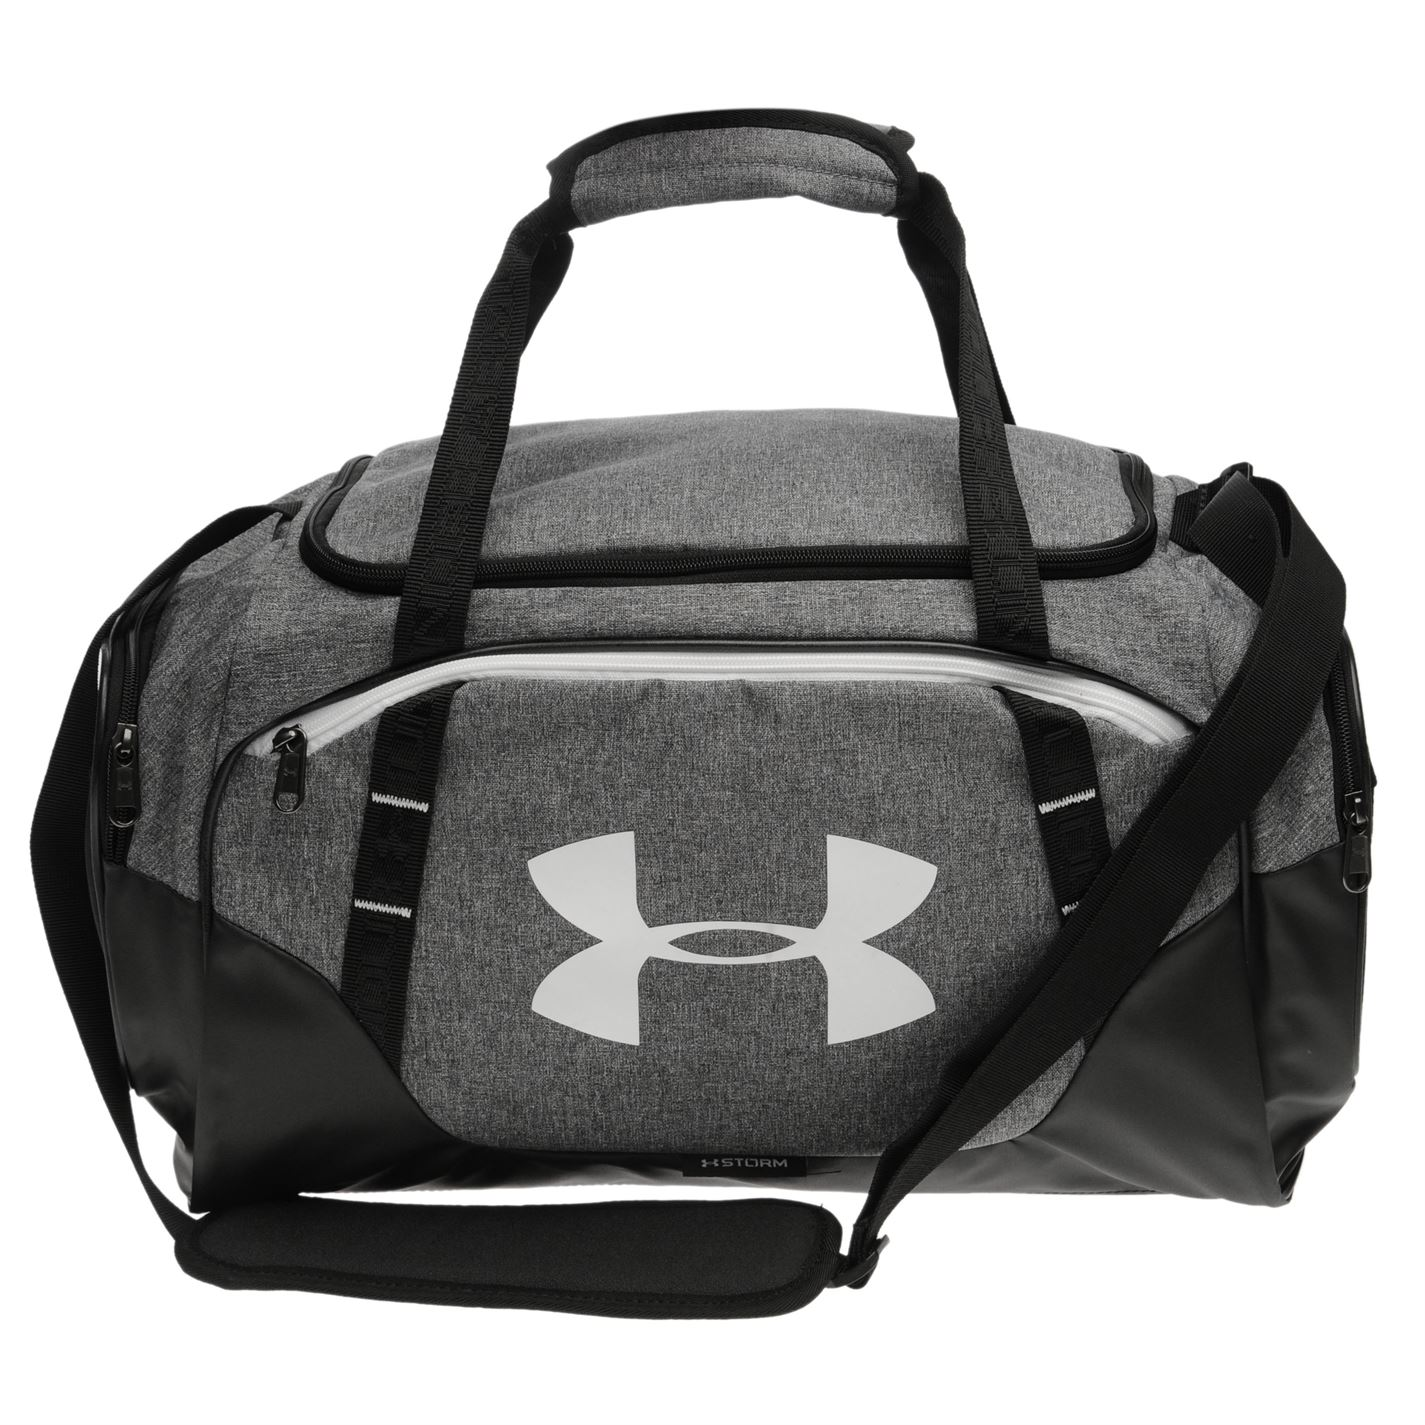 0467acbfdbd5 Under Armour Undeniable 3 Duffle Bag Holdall Water Repellent Zip ...